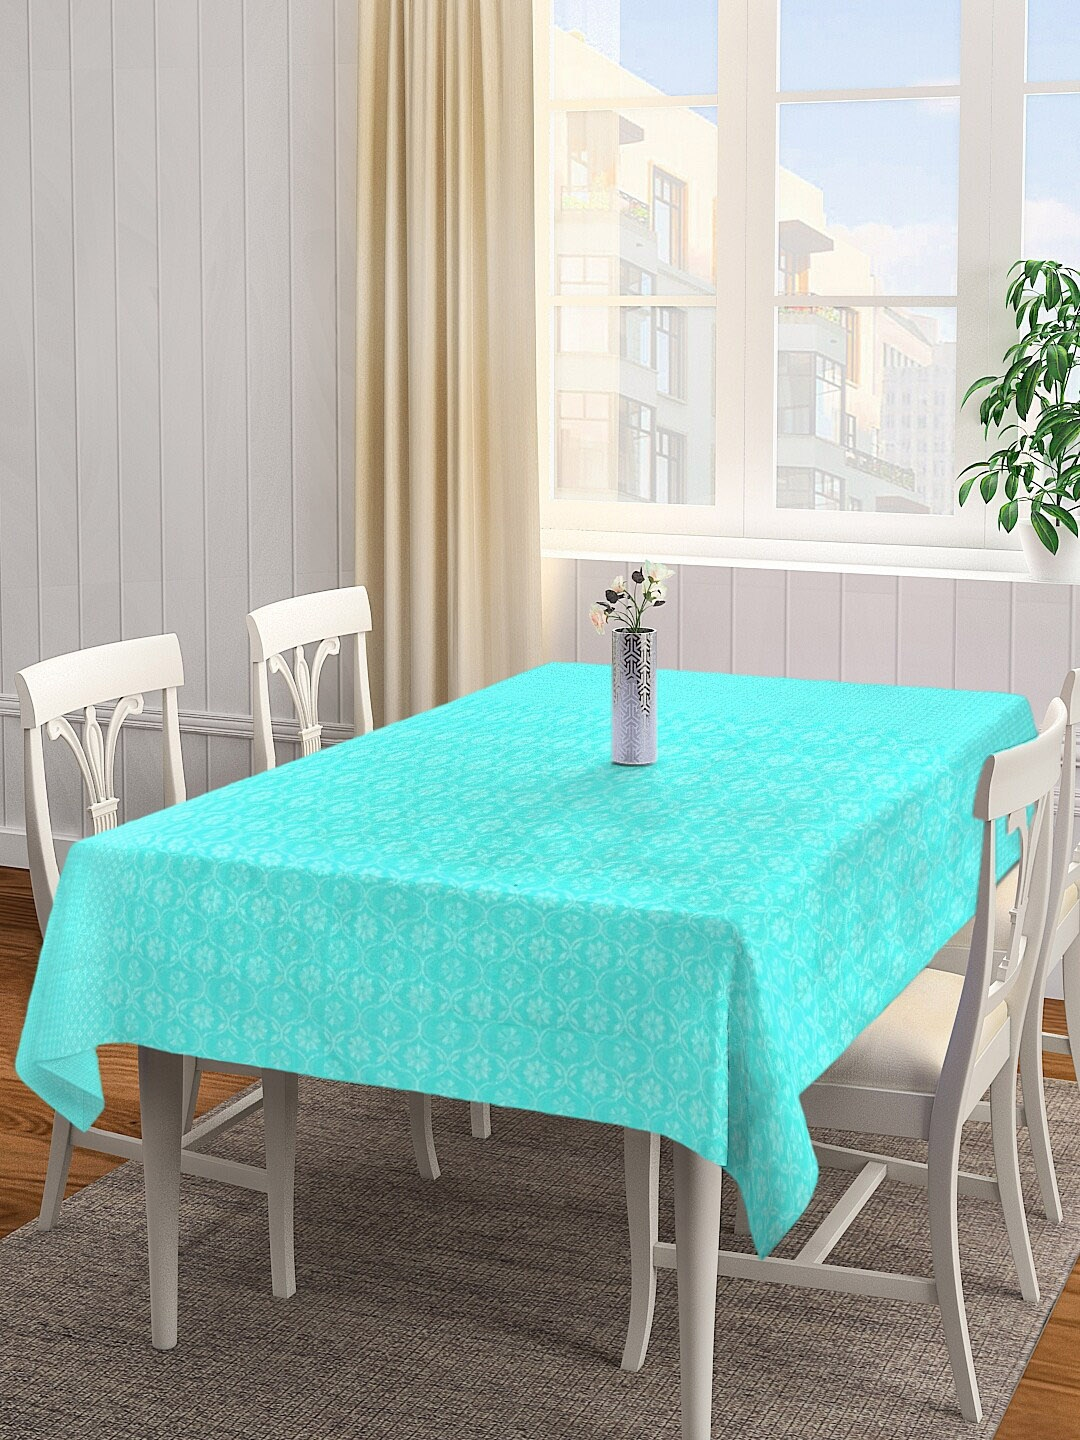 NEUDIS Turquoise Blue Printed 6 Seater Table Cover